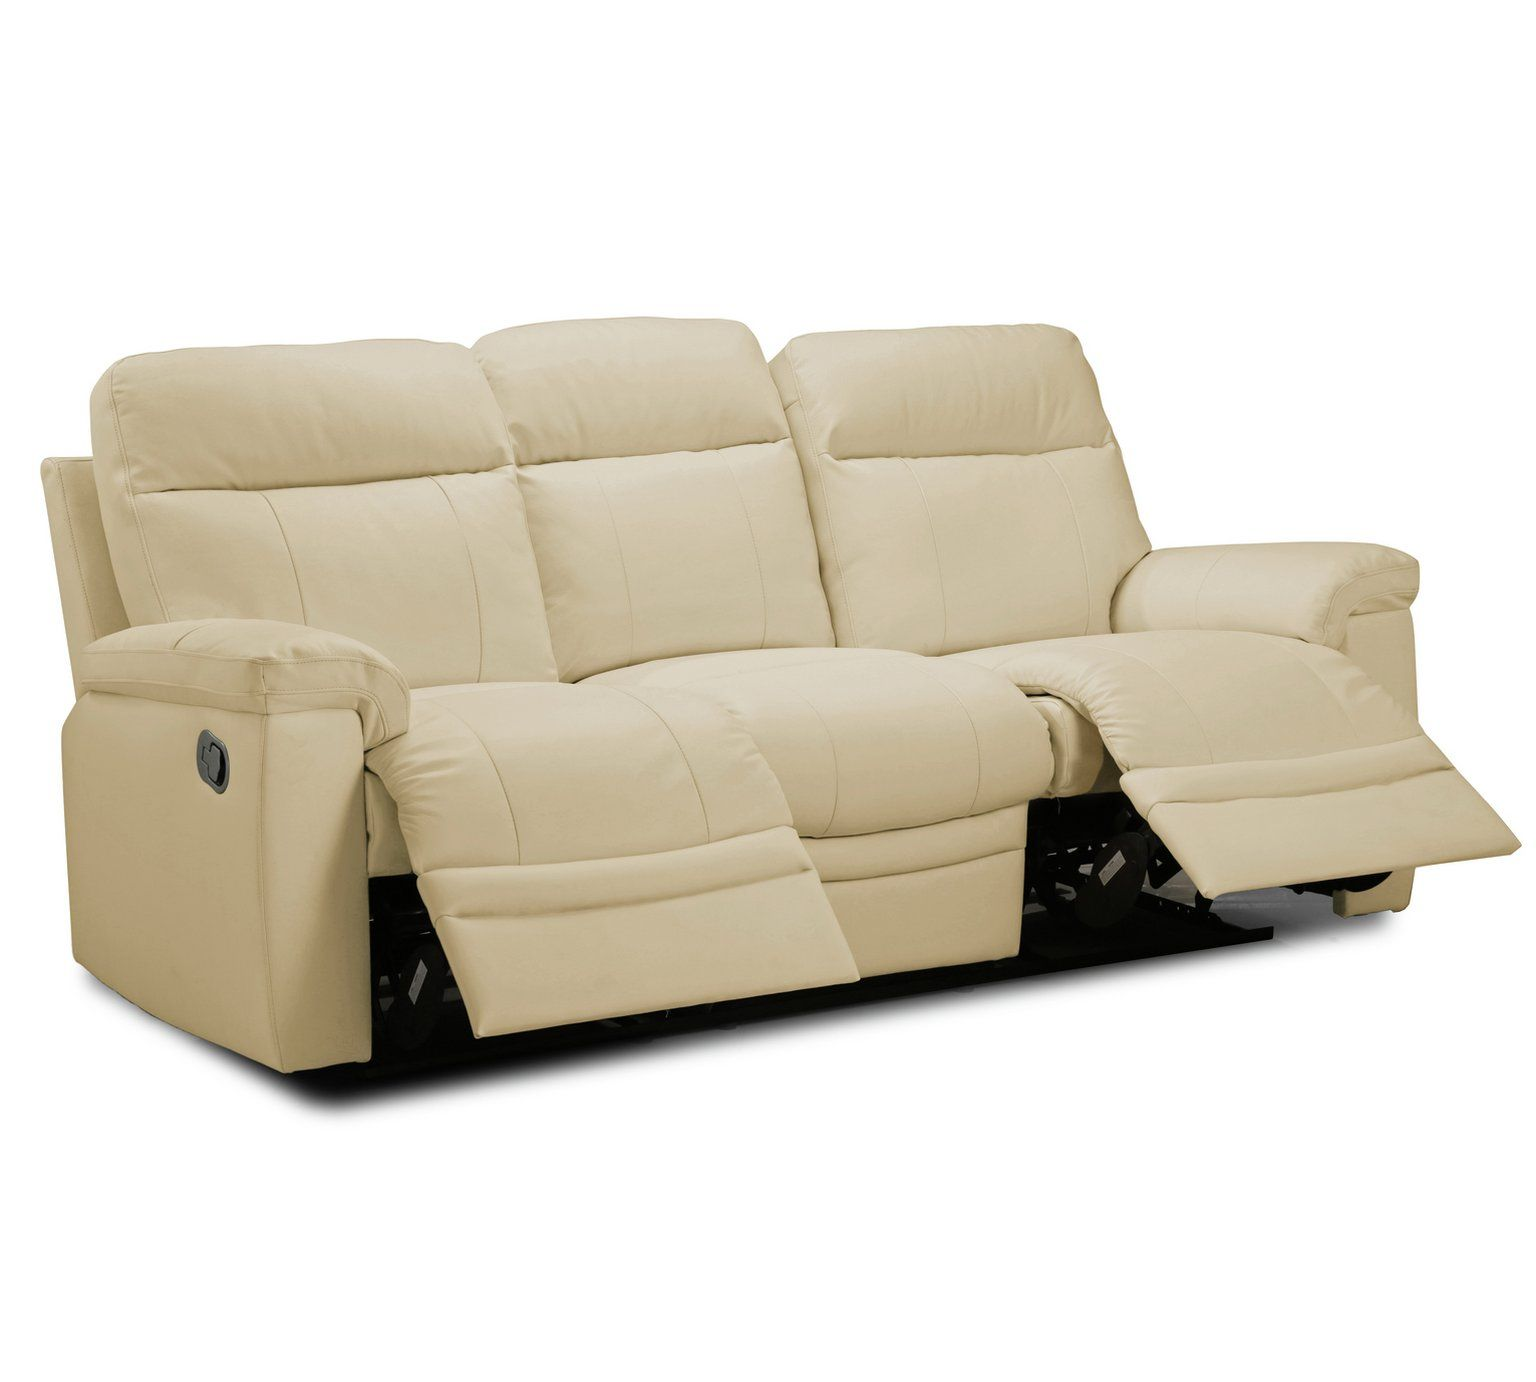 Home Paolo Chair & 3 Seater Manual Recline Sofa -Ivory ...